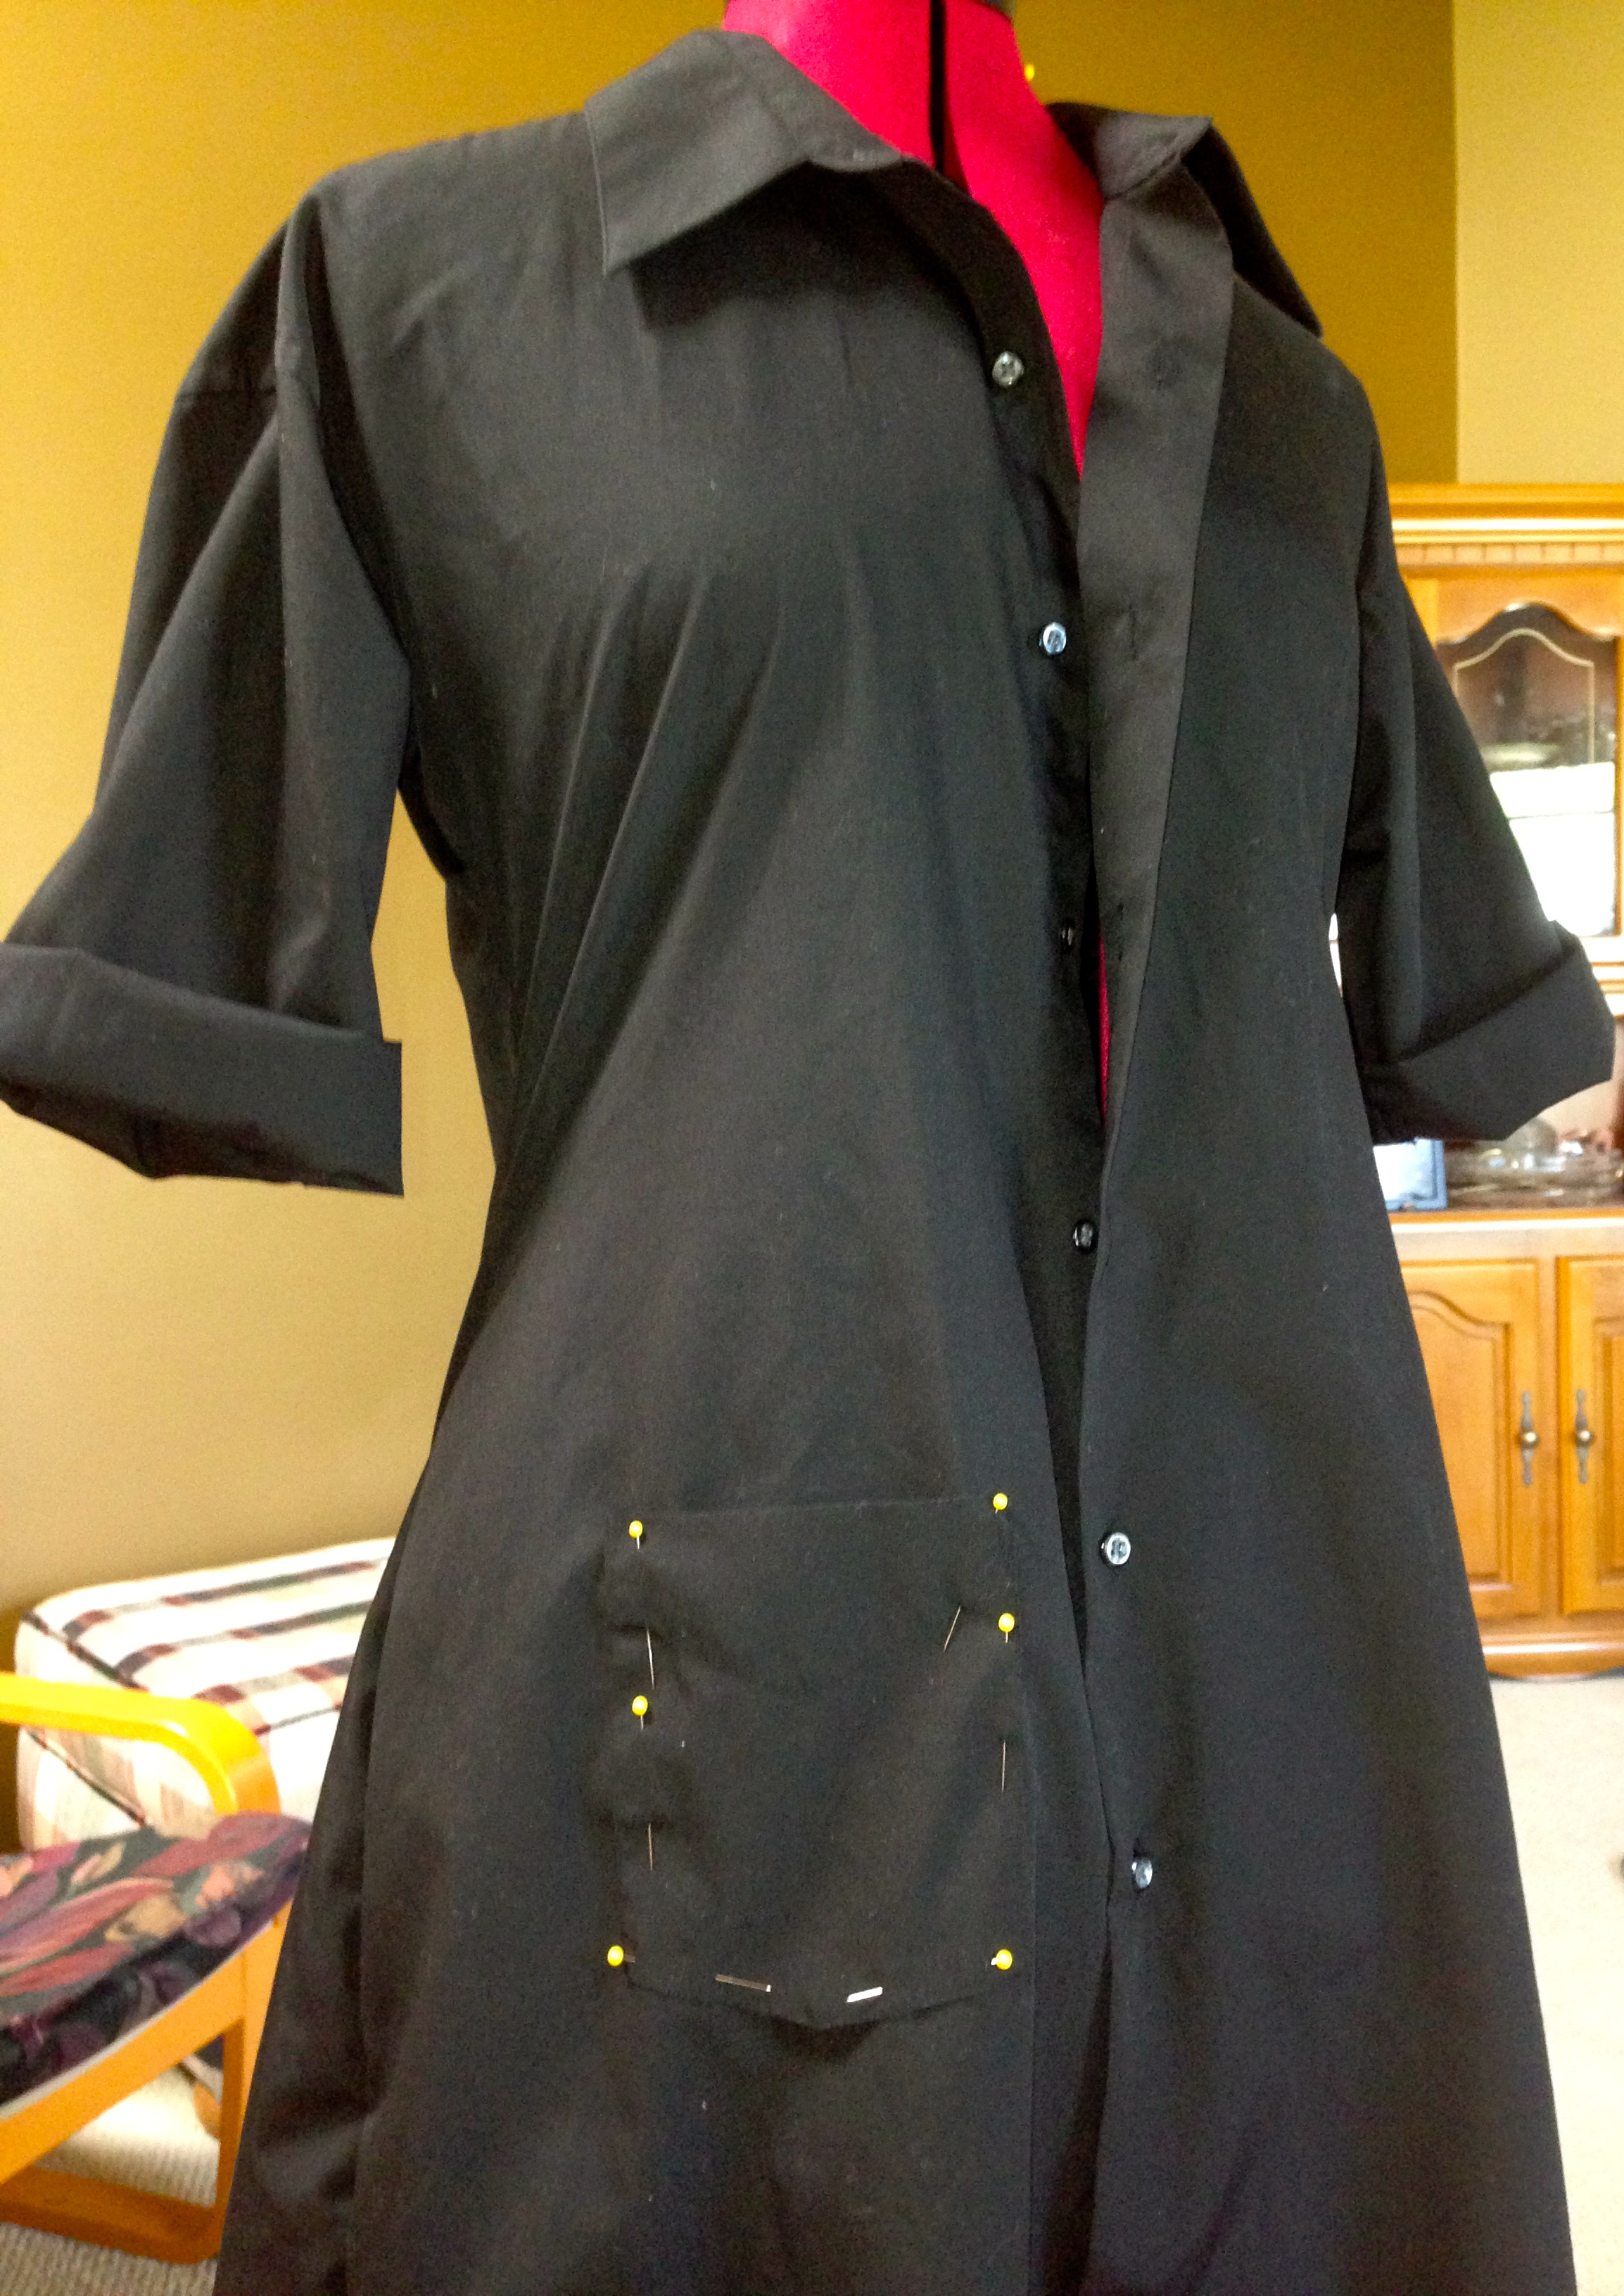 49-Cent FridayMens Dress Shirt to LBD Refashion Diary of a